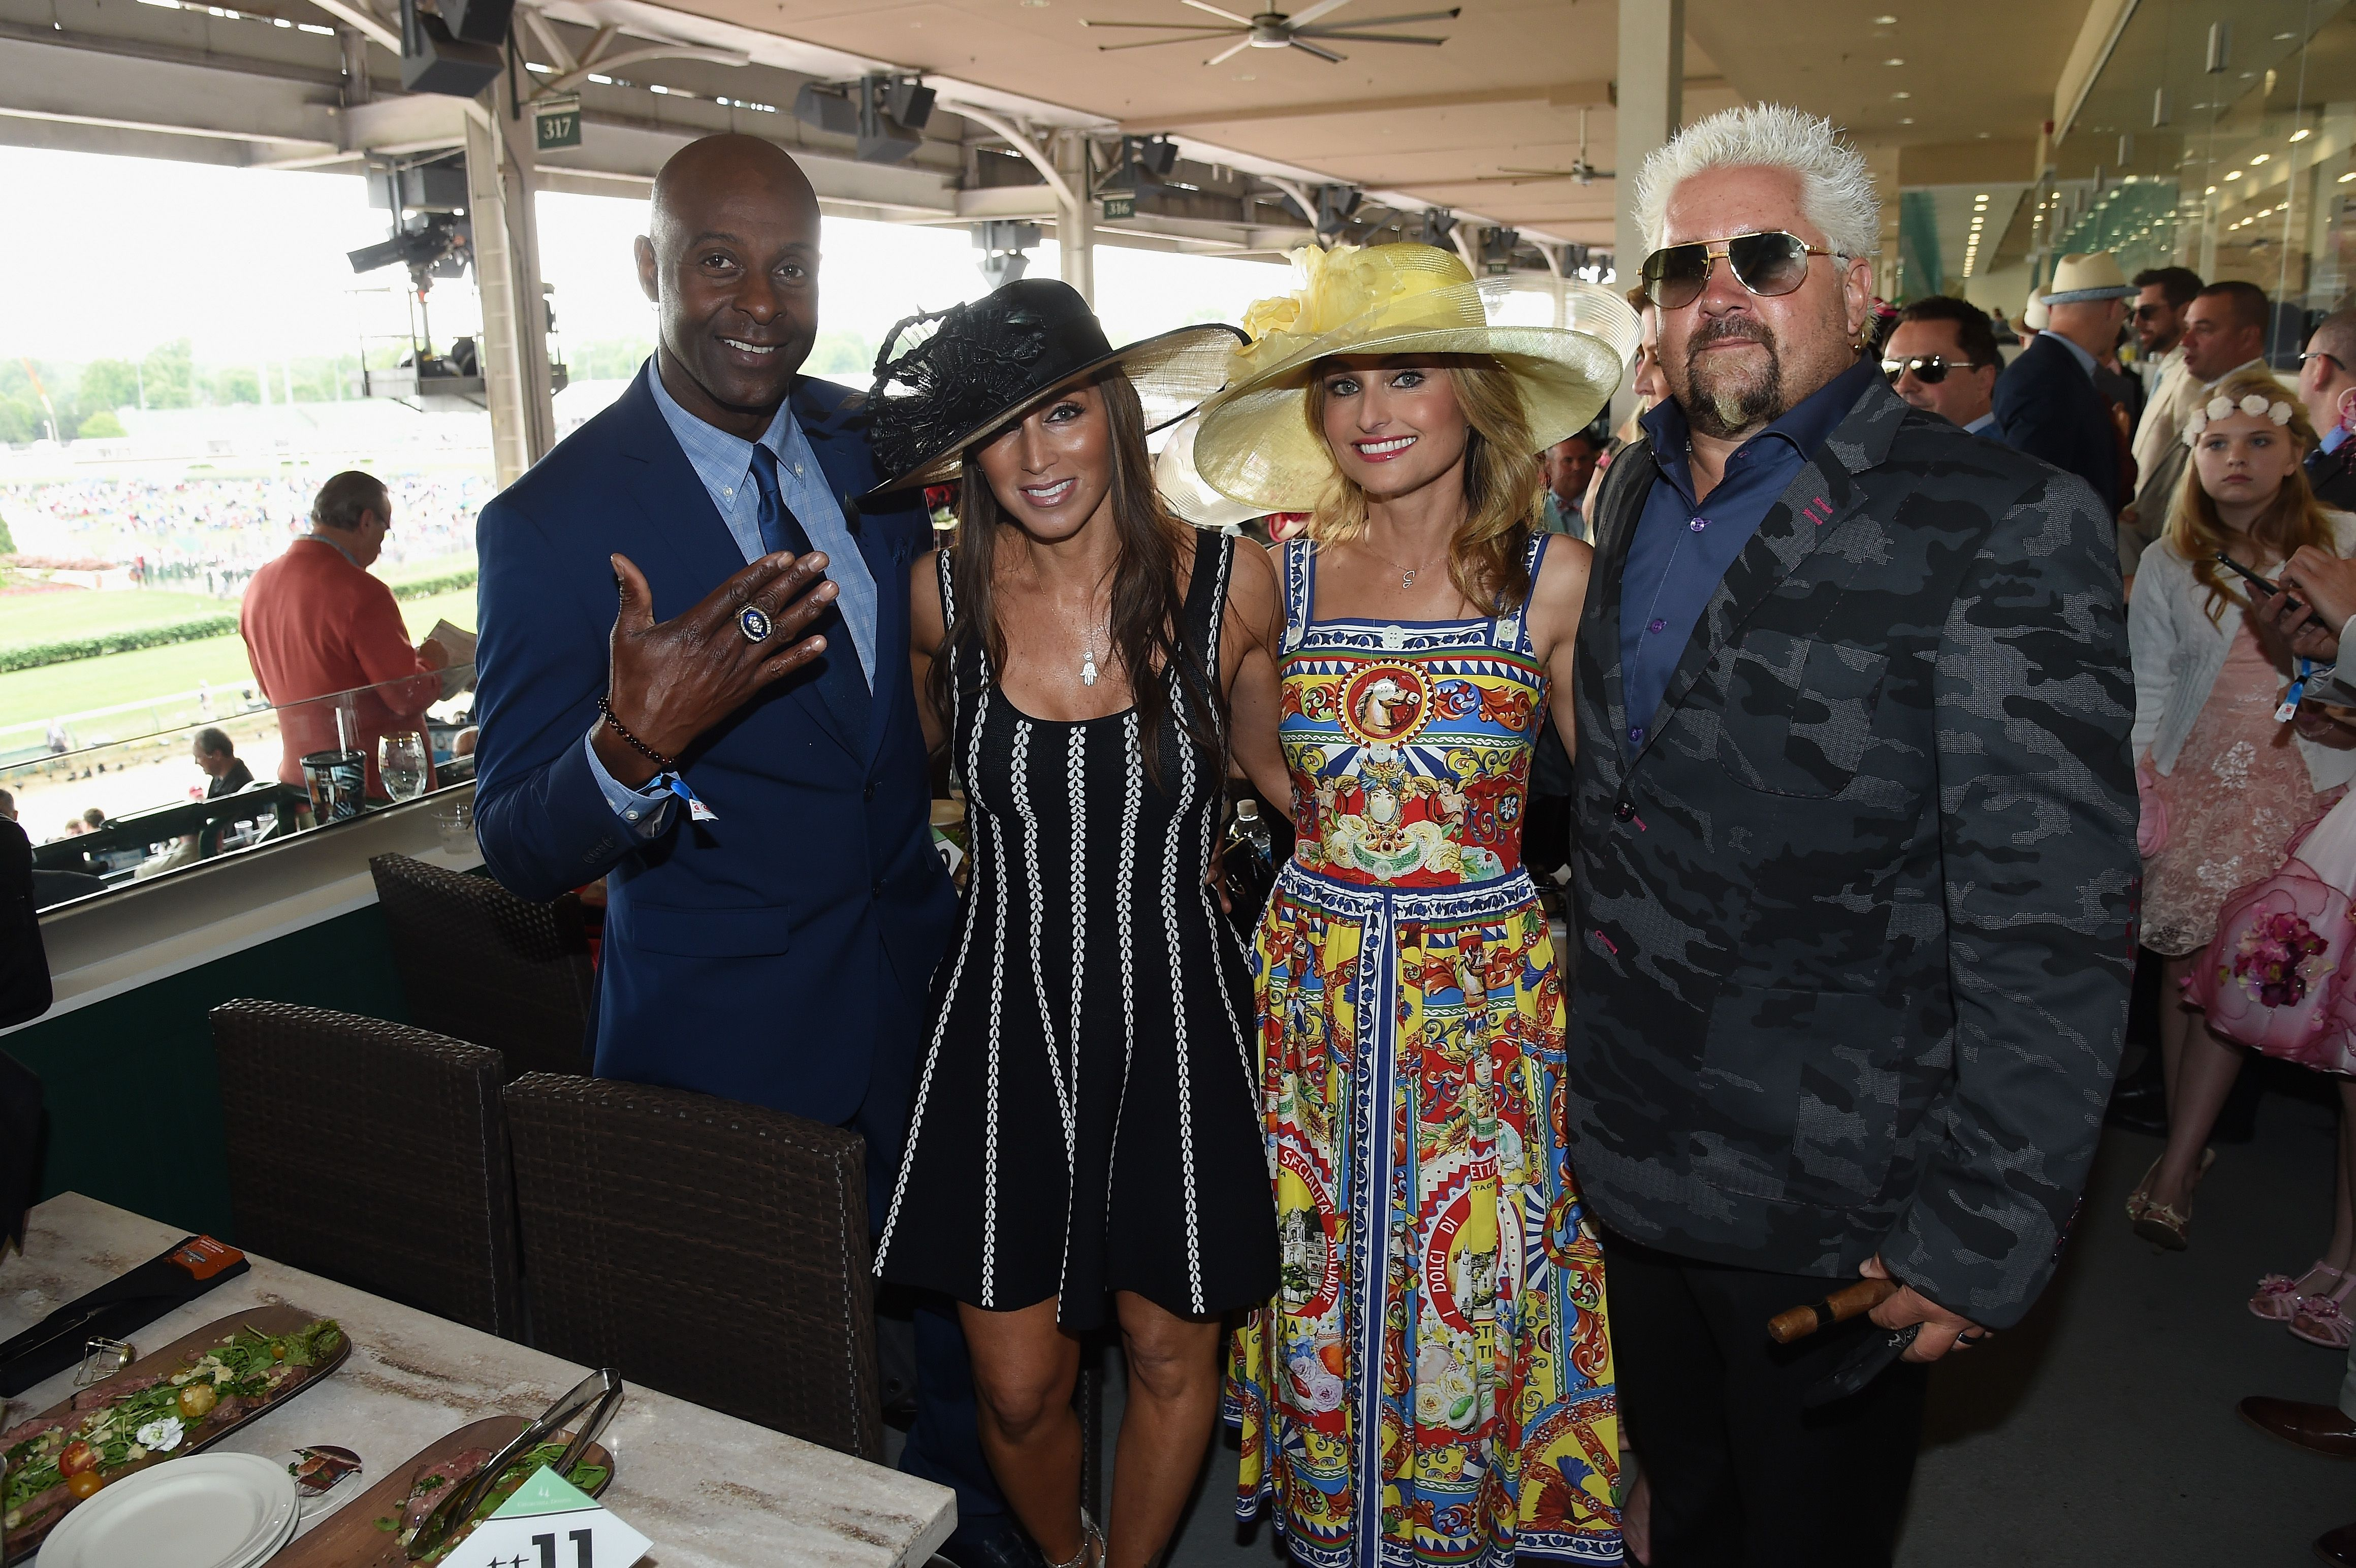 Jerry Rice, Giada De Laurentiis, and Guy Fieri